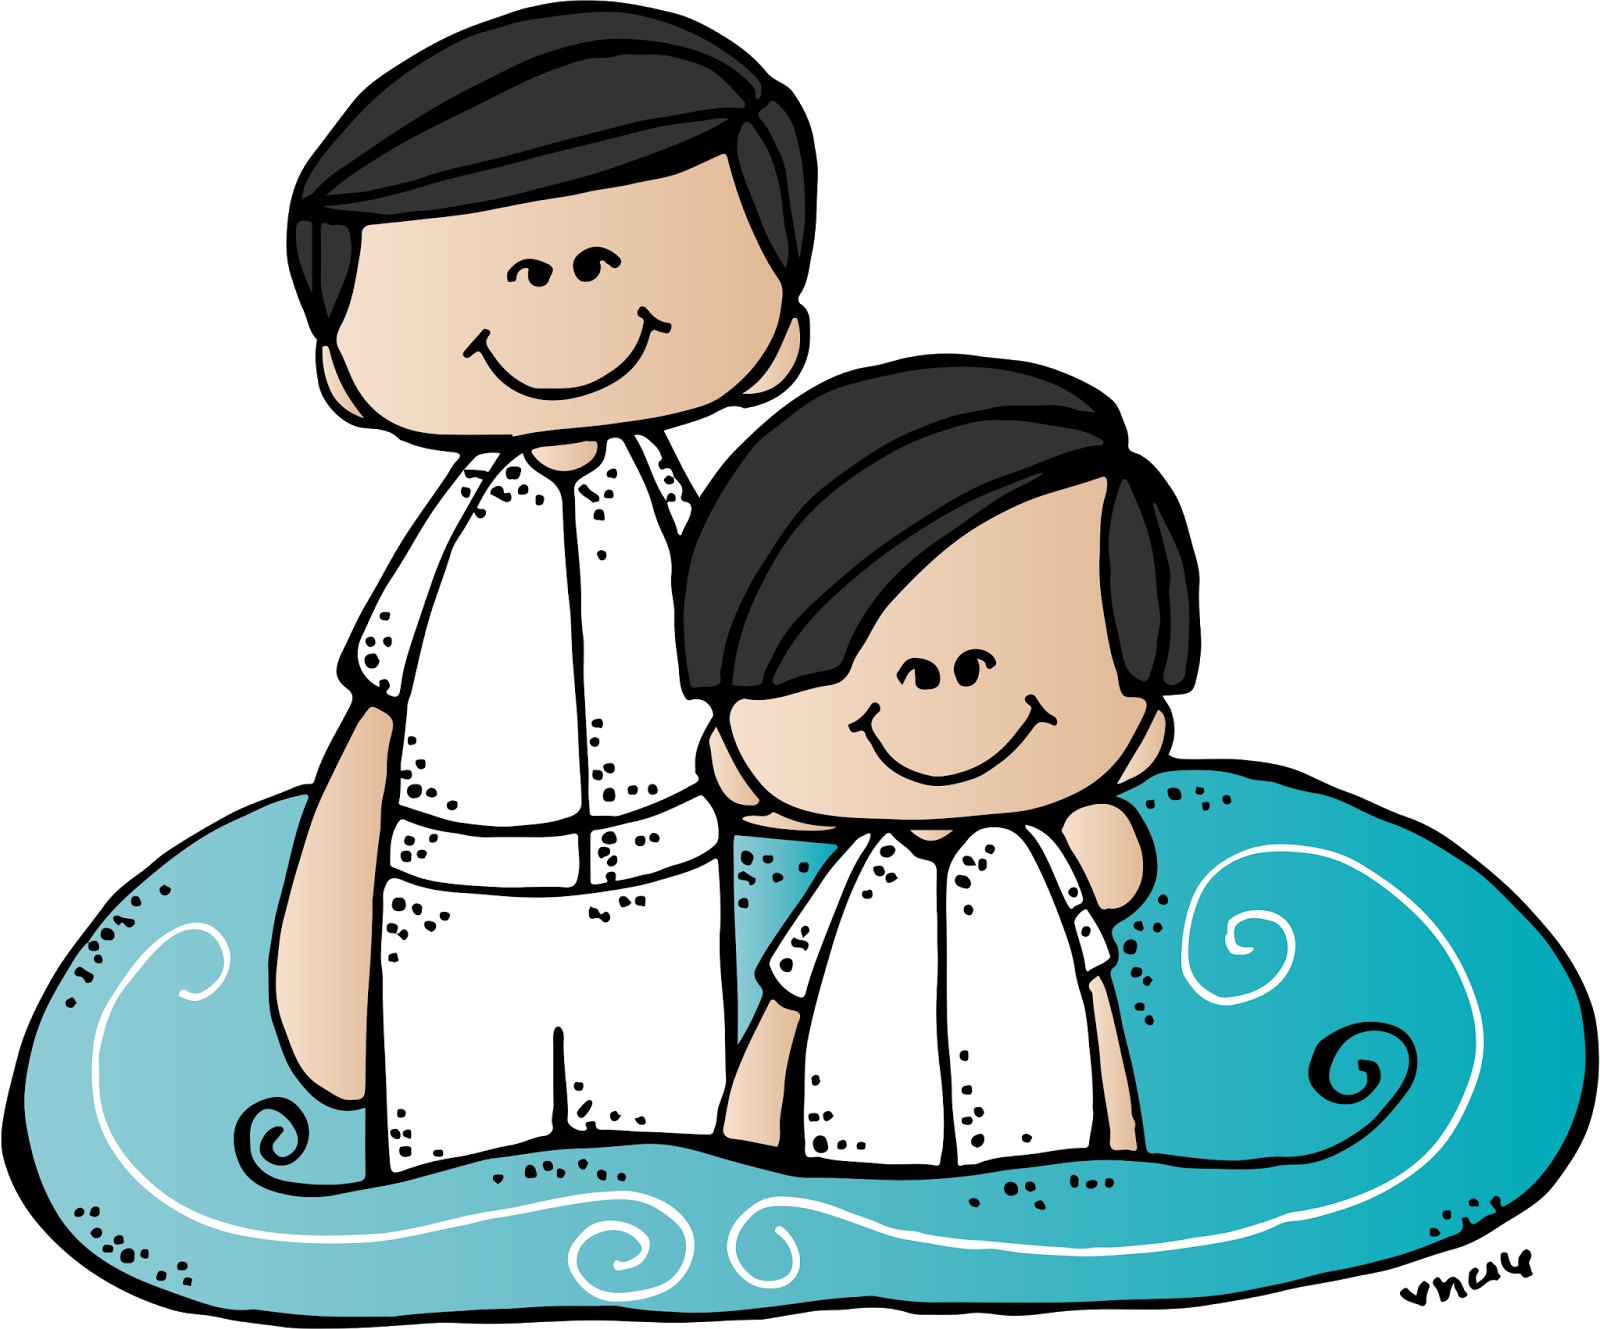 Faith clipart christening church. Lds baptism candelalive co